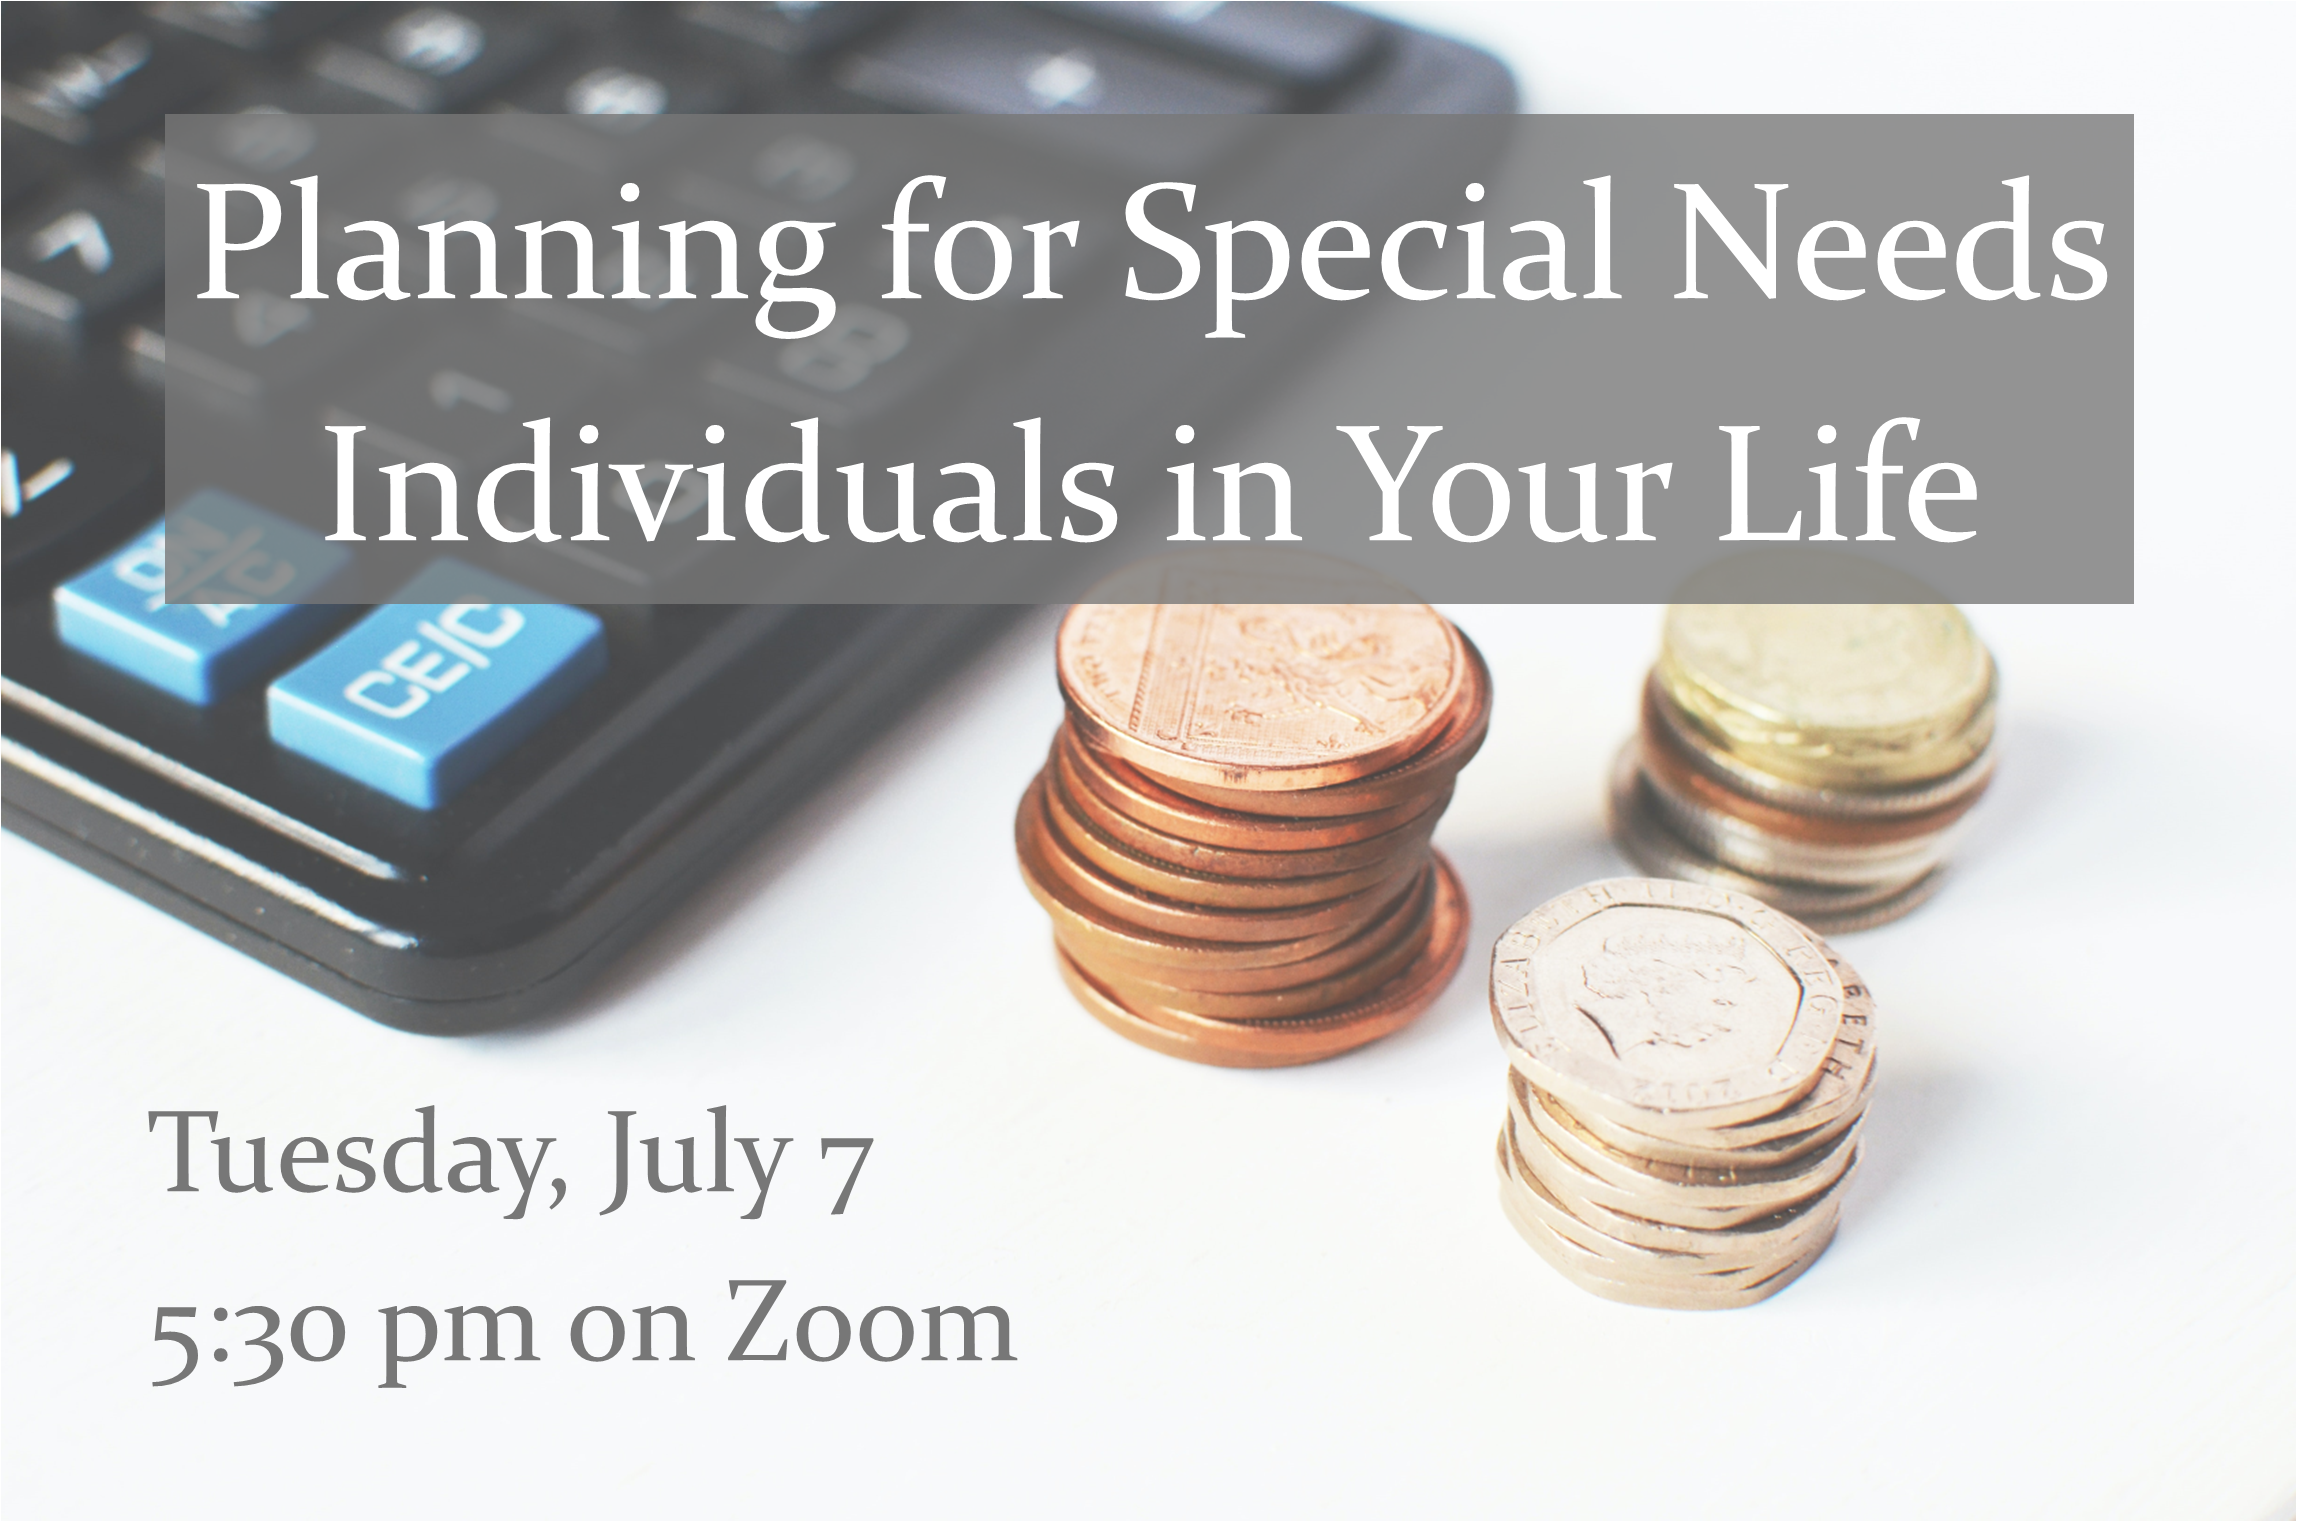 Planning for Special Needs Individuals in Your Life